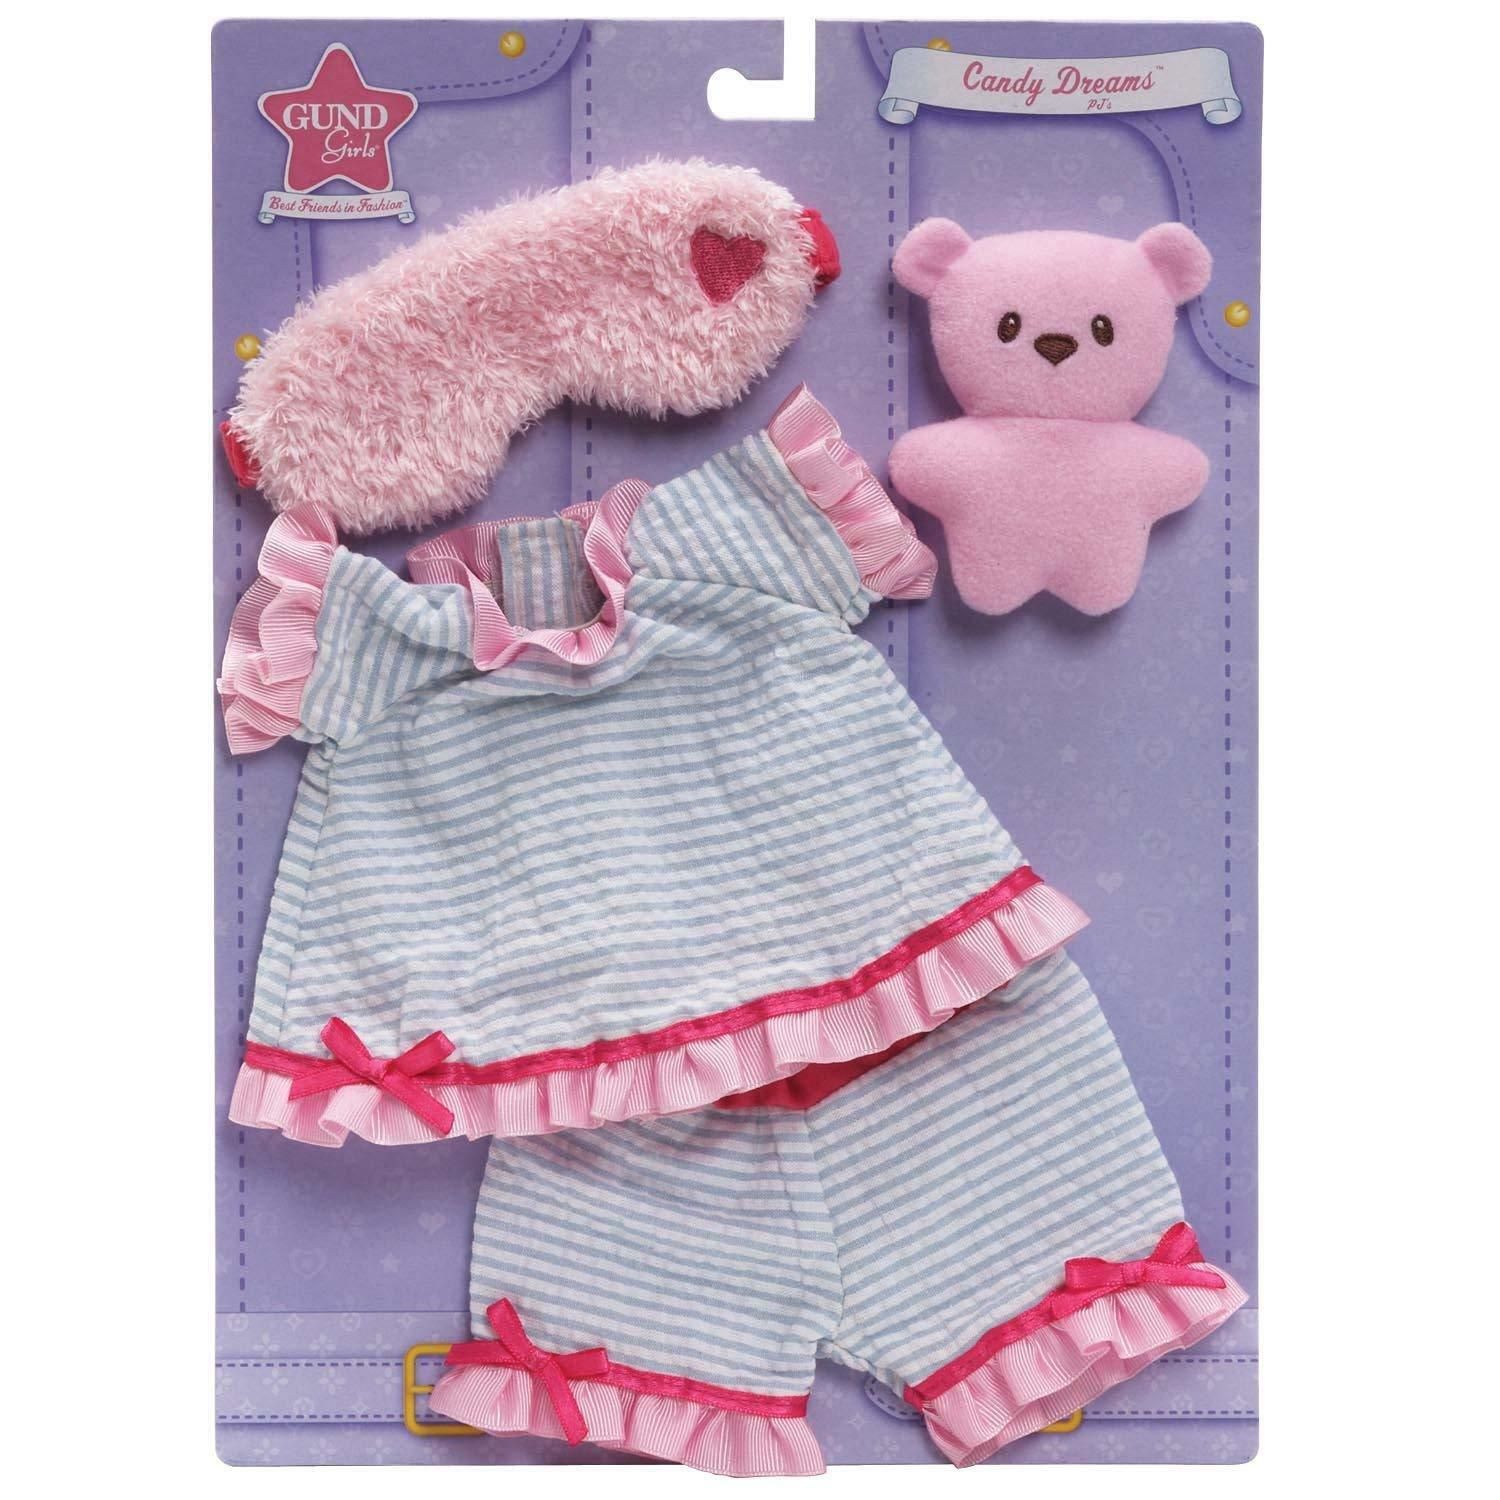 """Gund Girls Best Friends In Fashion Candy Dreams PJ Pajamas Outfit Fits 17"""" Doll - $12.16"""